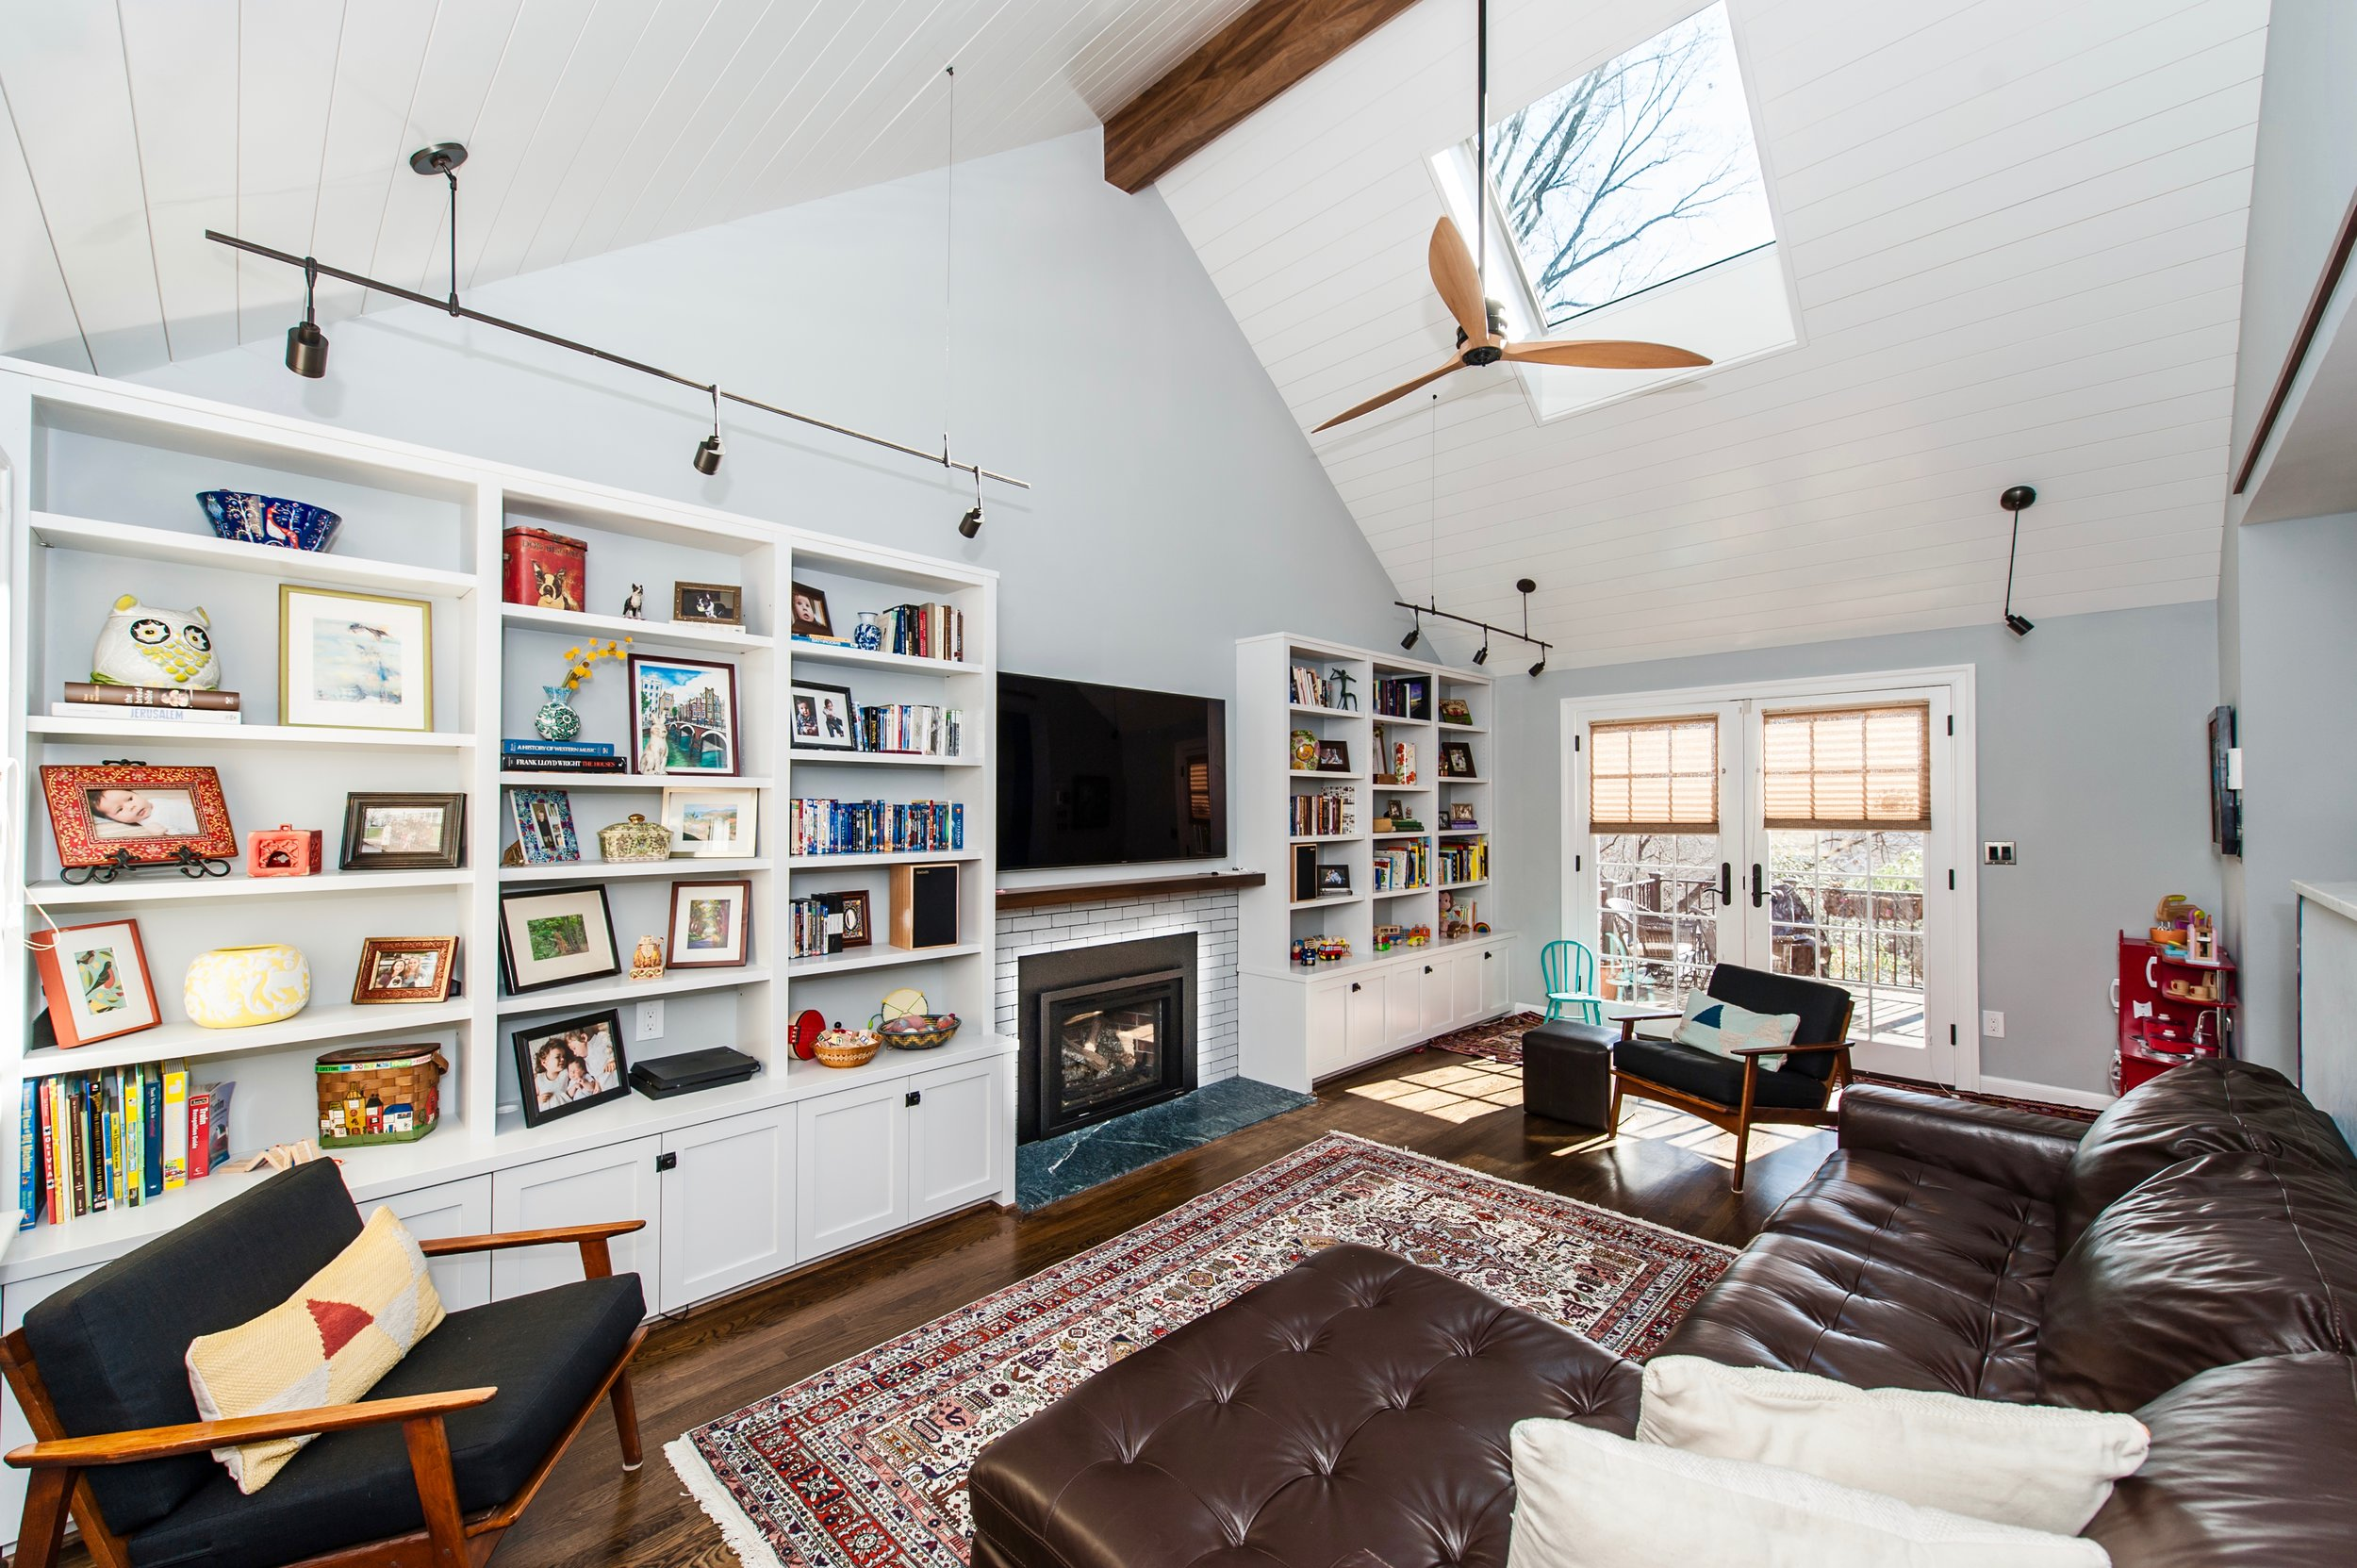 Family Room Renovation with new skylights, shelves, and new raised ceiling